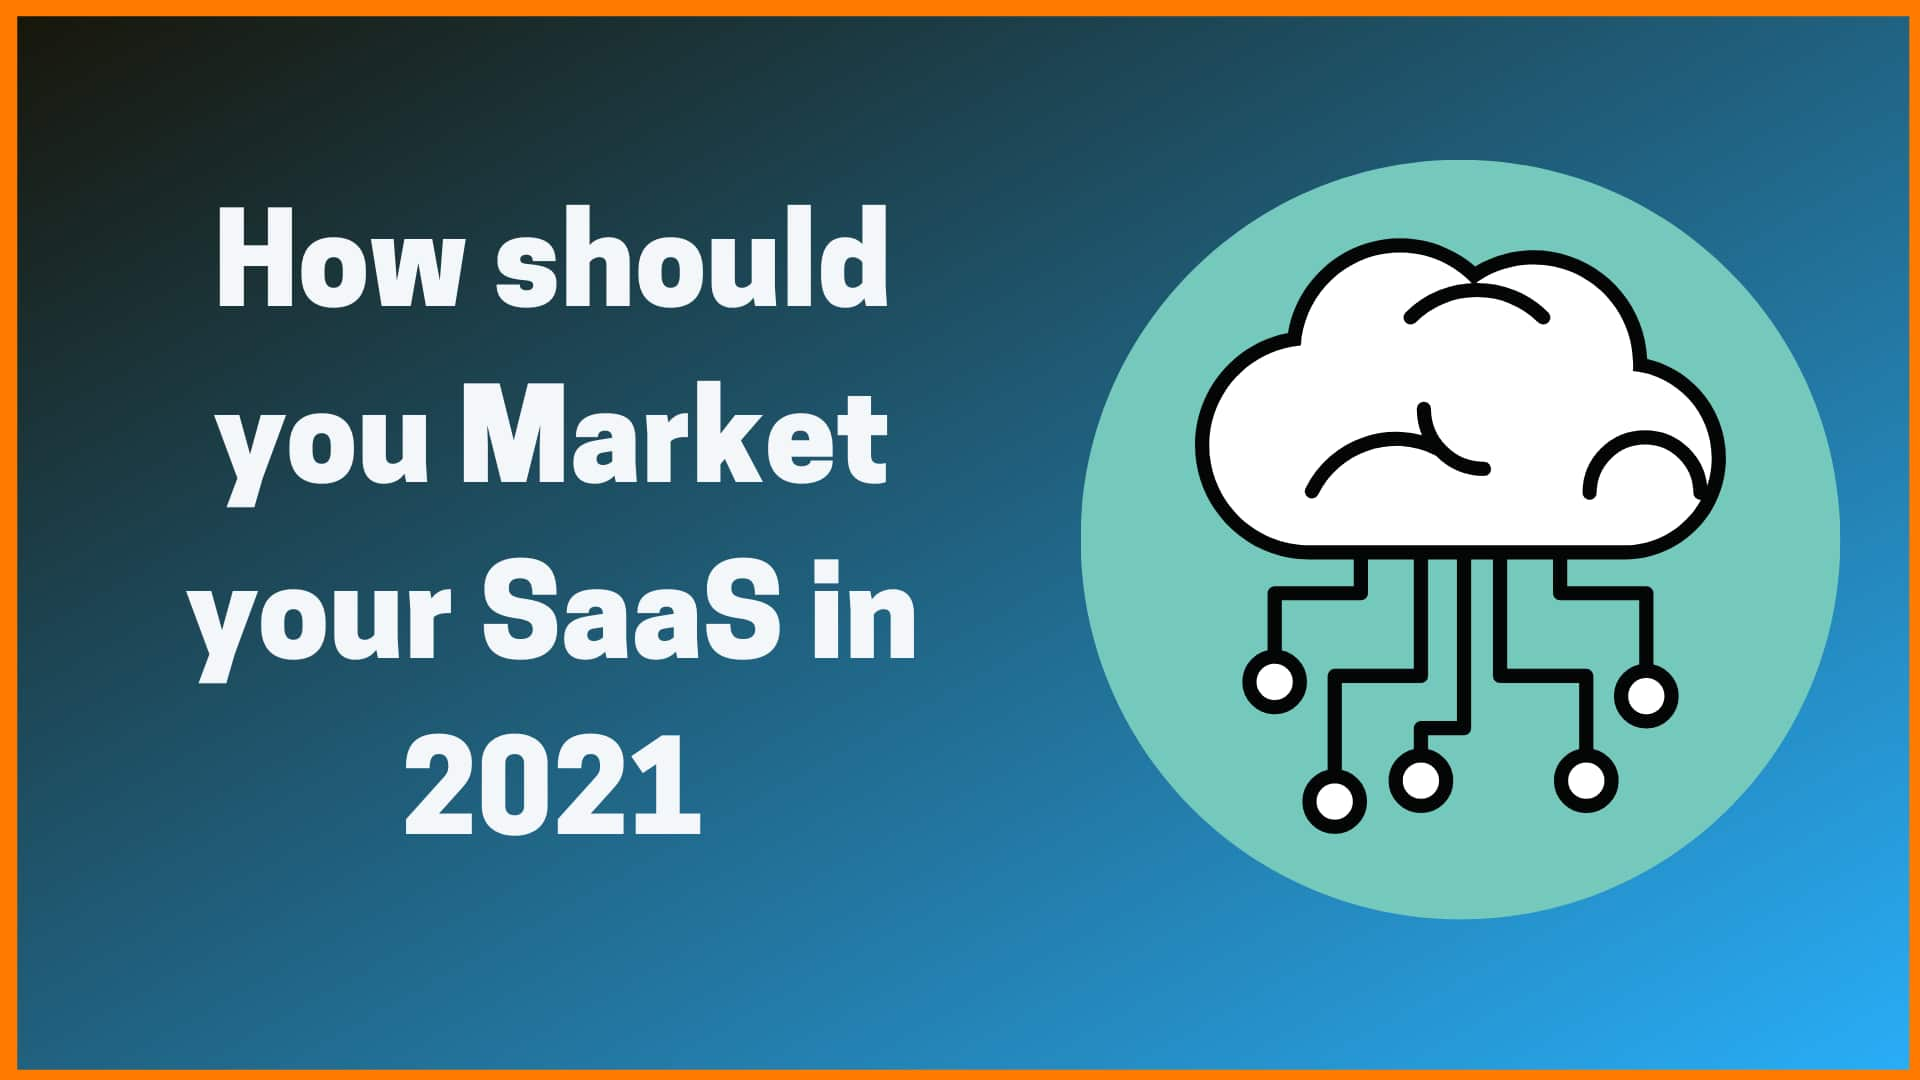 How should you market your SaaS in 2021?